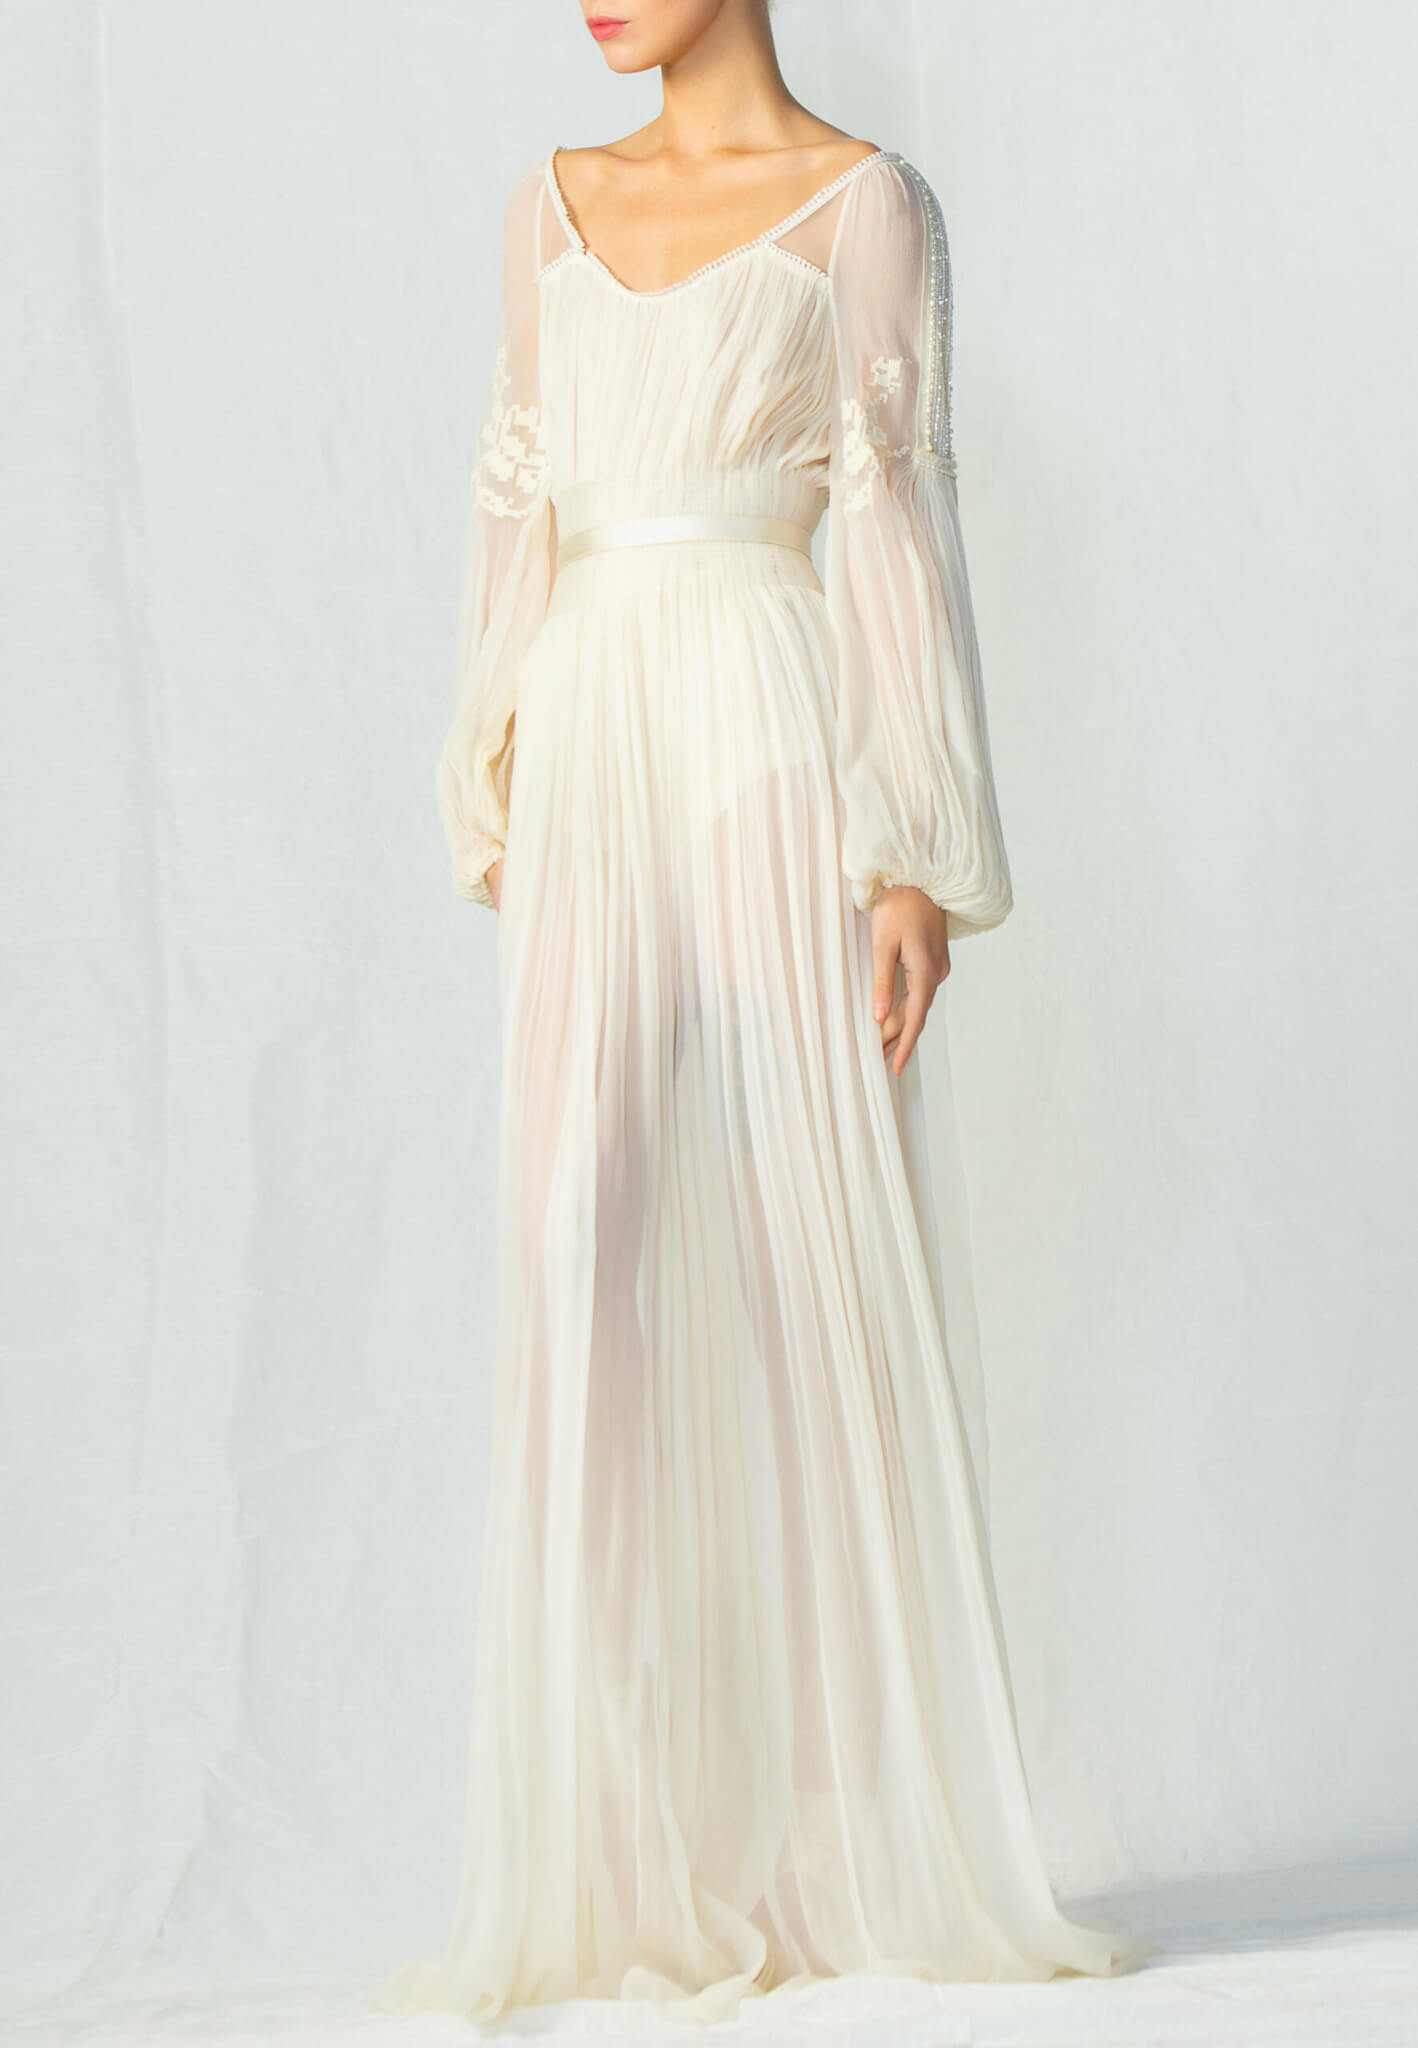 Bridal silk dress with embroidery